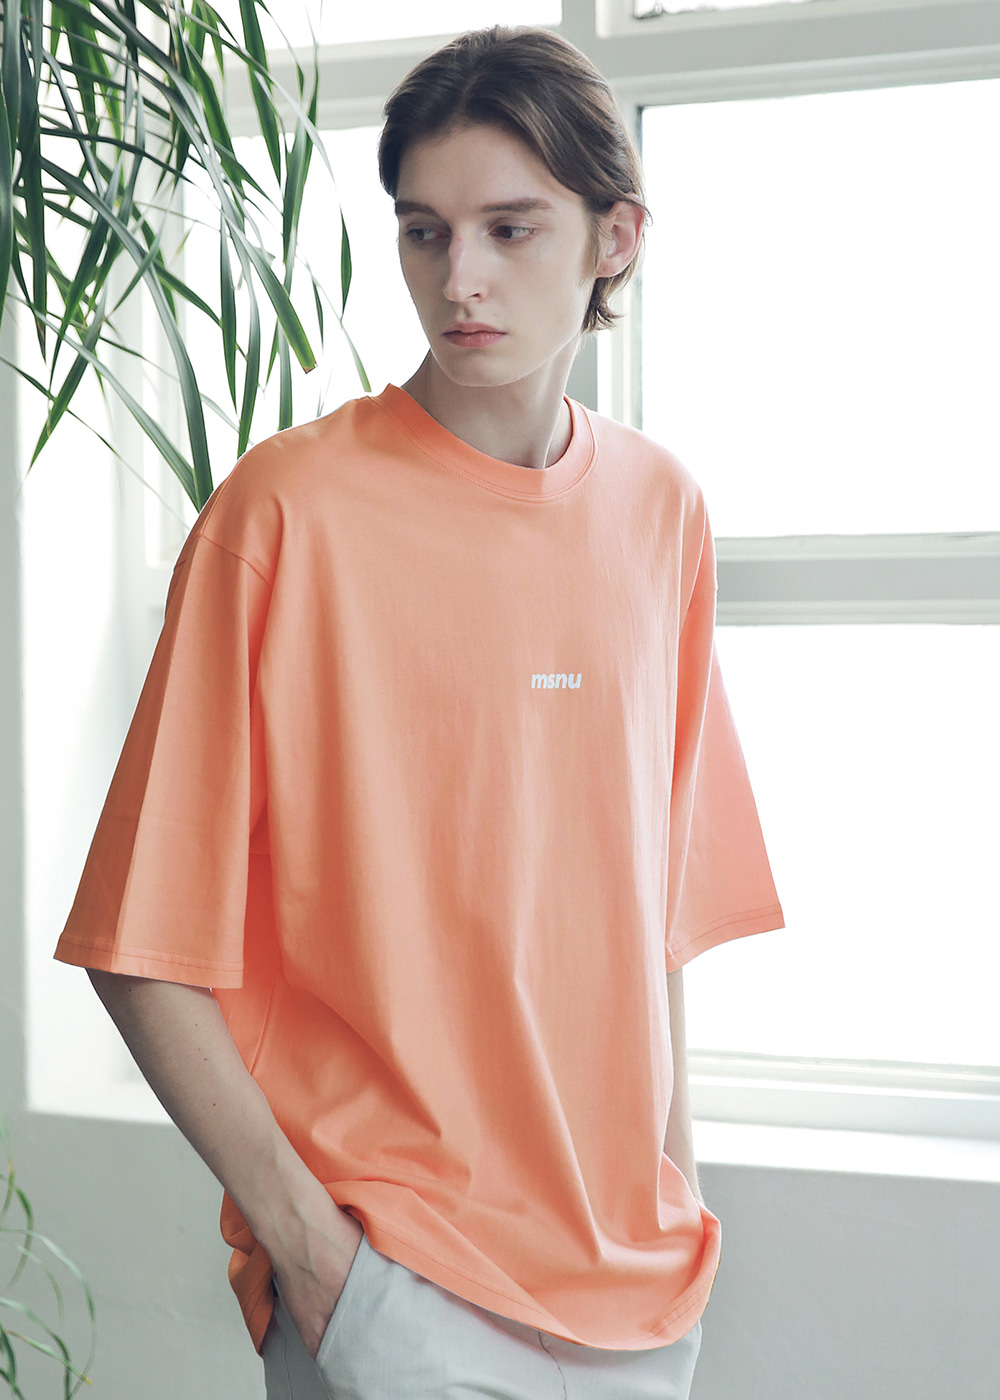 MSNU DISASSEMBLE OVERSIZED T-SHIRTS MSNTS005-CR